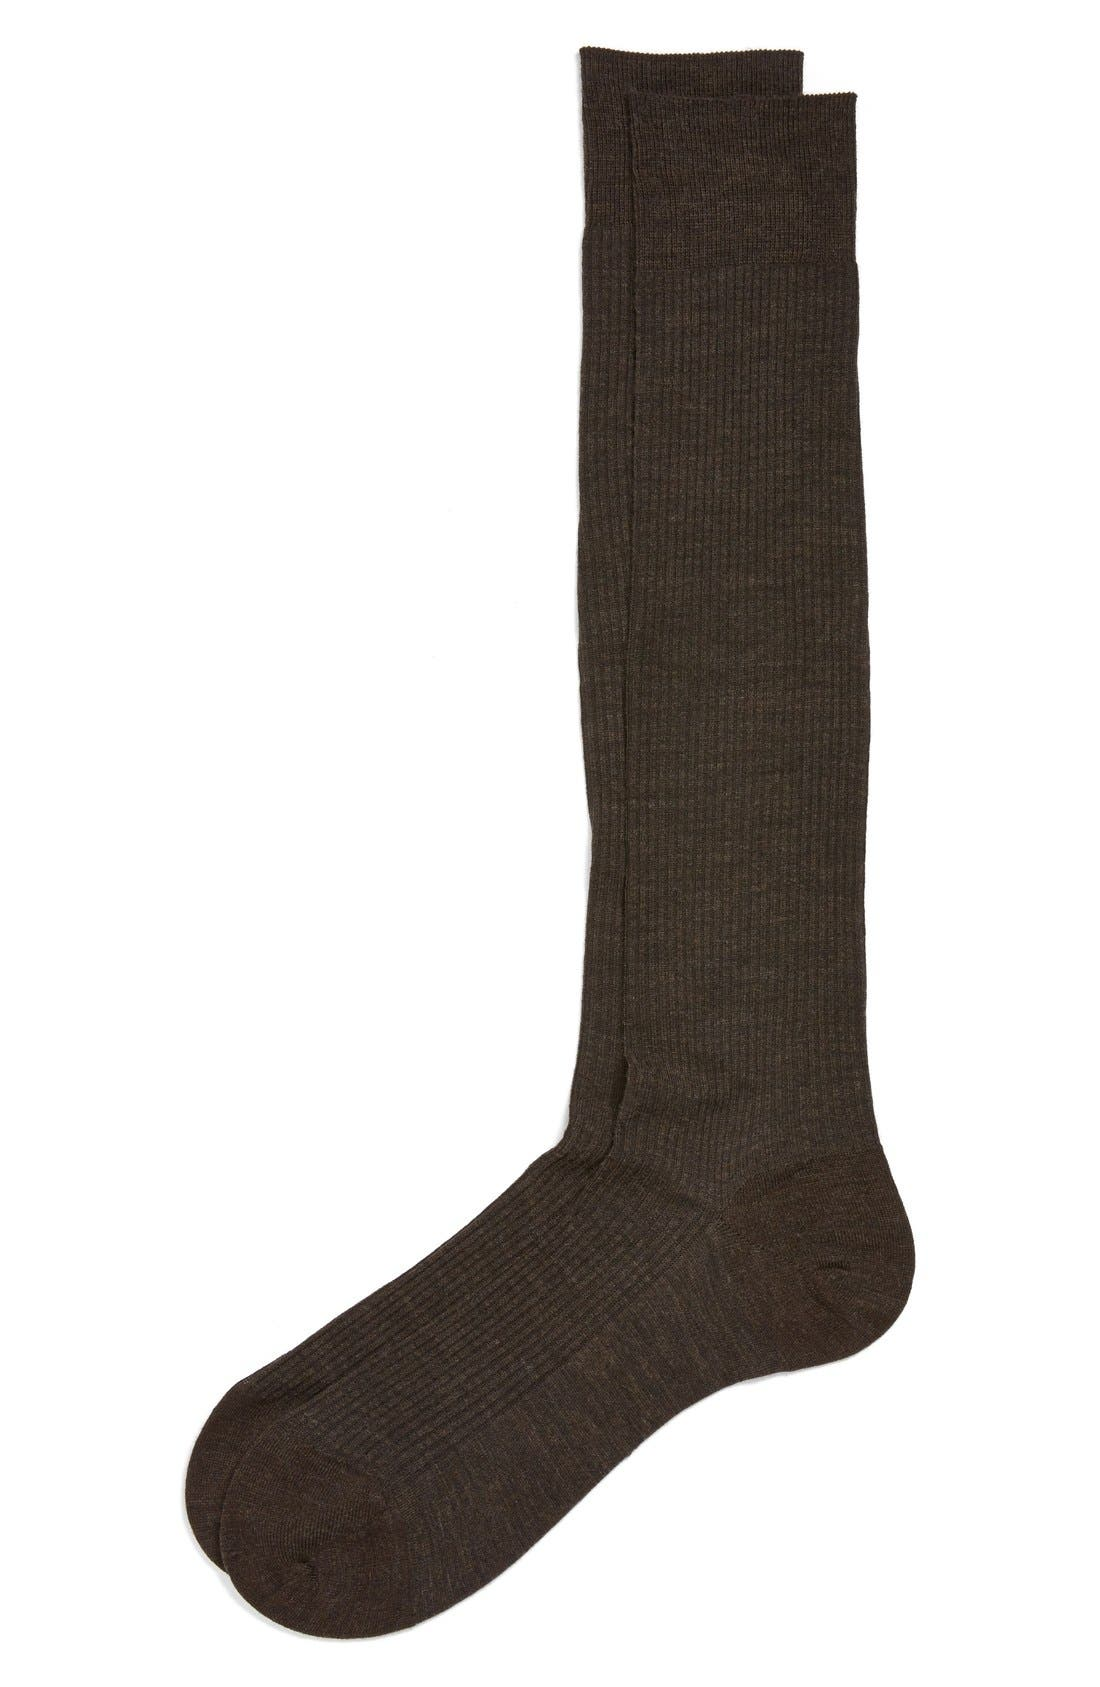 Main Image - Pantherella Fine Wool Blend Over the Calf Socks